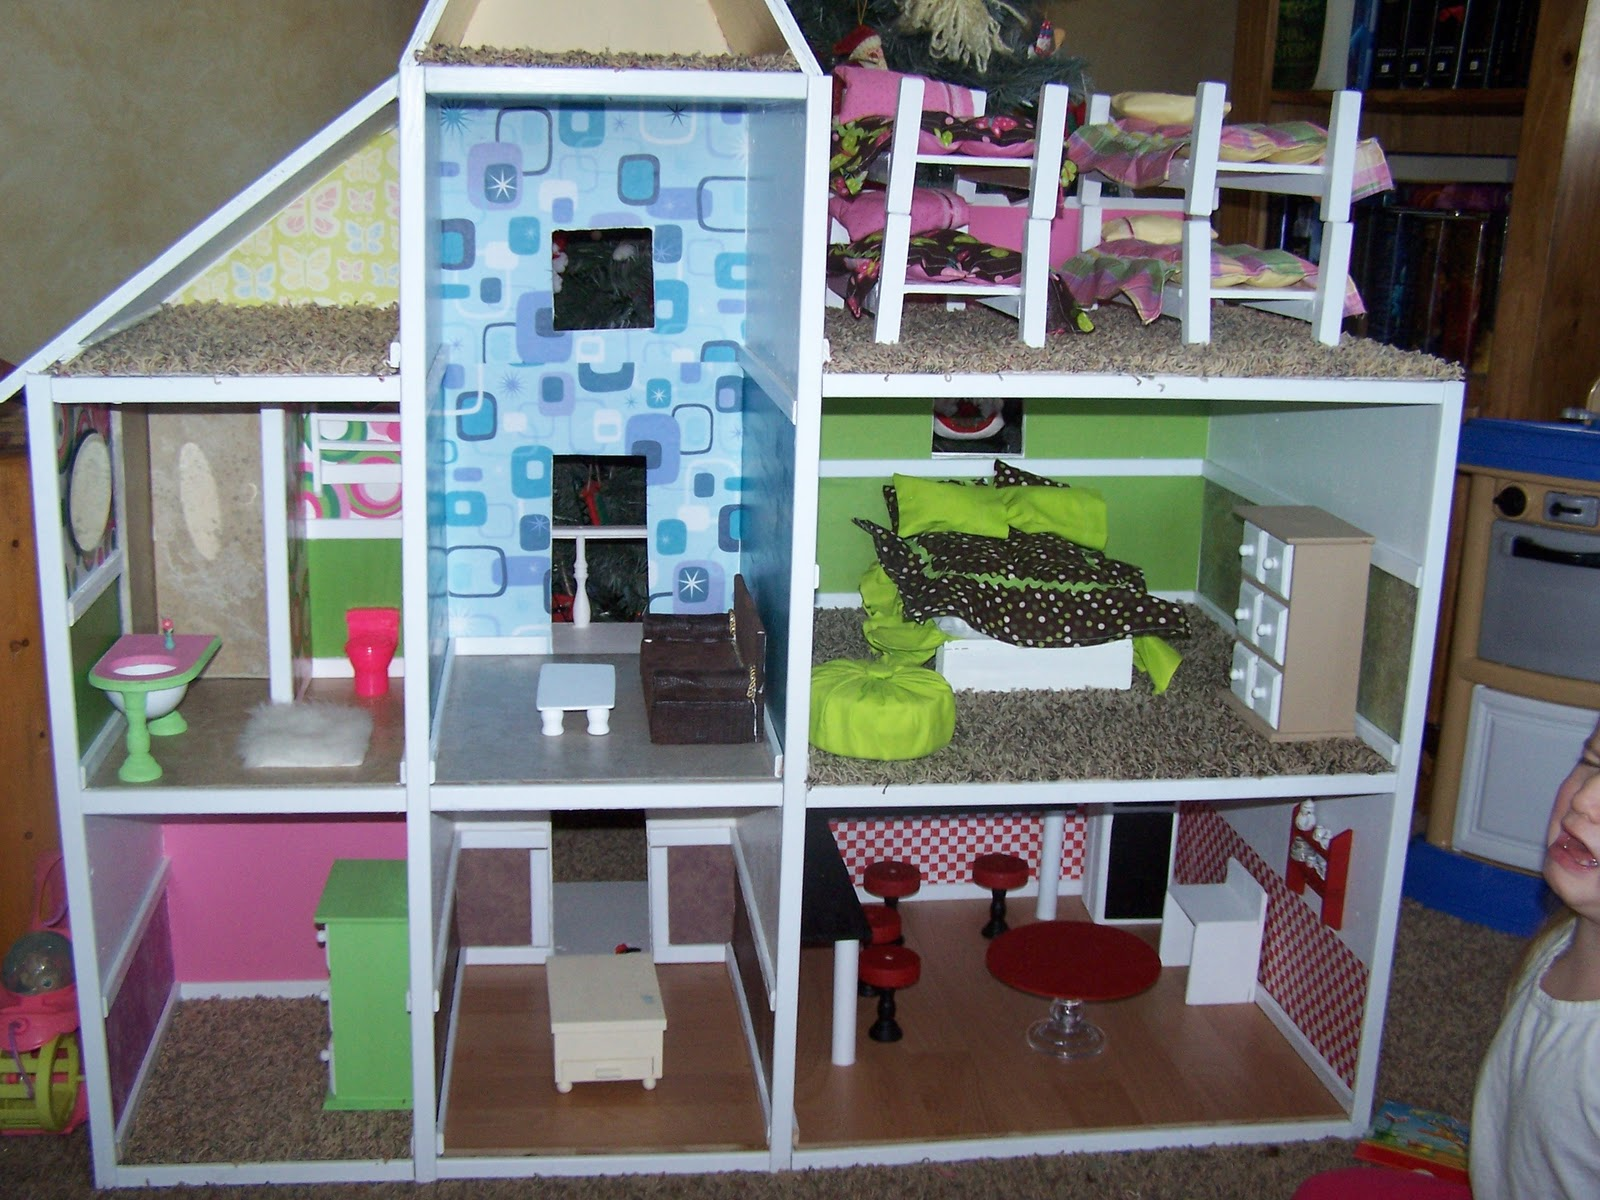 Barbie Life In The Dreamhouse Wiki Images. Barbie Dreamhouse Dolls House Playset Toys R Us Furthermore Virtual . Decorating Idea